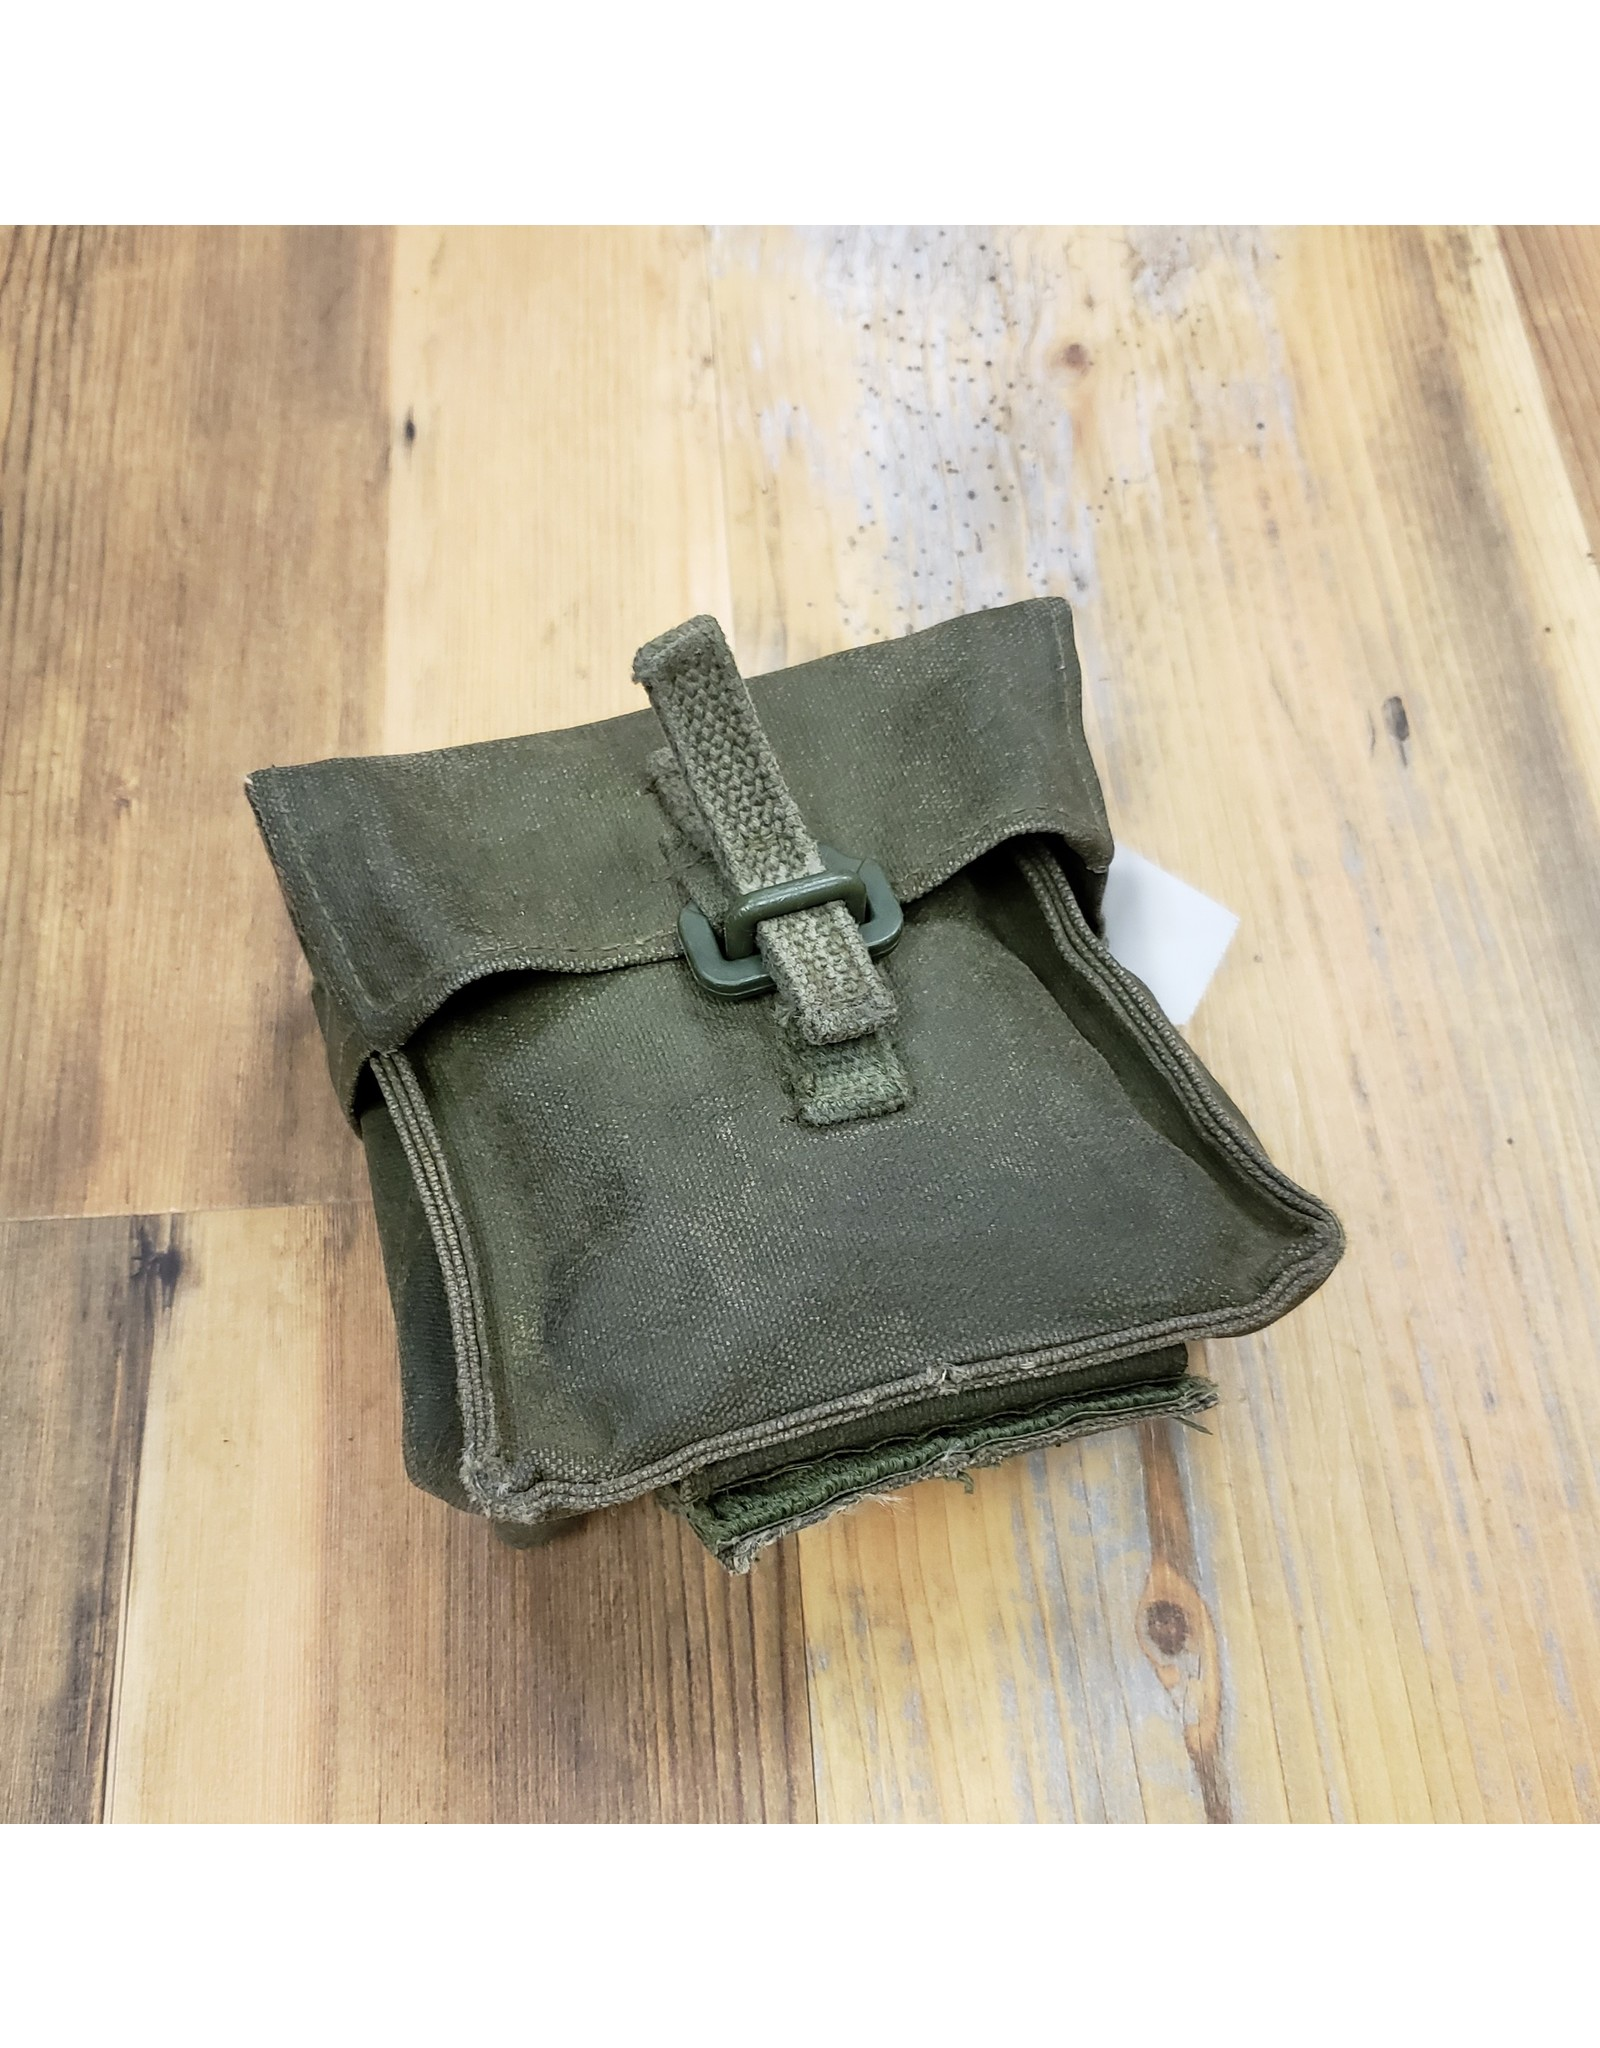 CANADIAN SURPLUS CANADIAN GRENADE POUCH